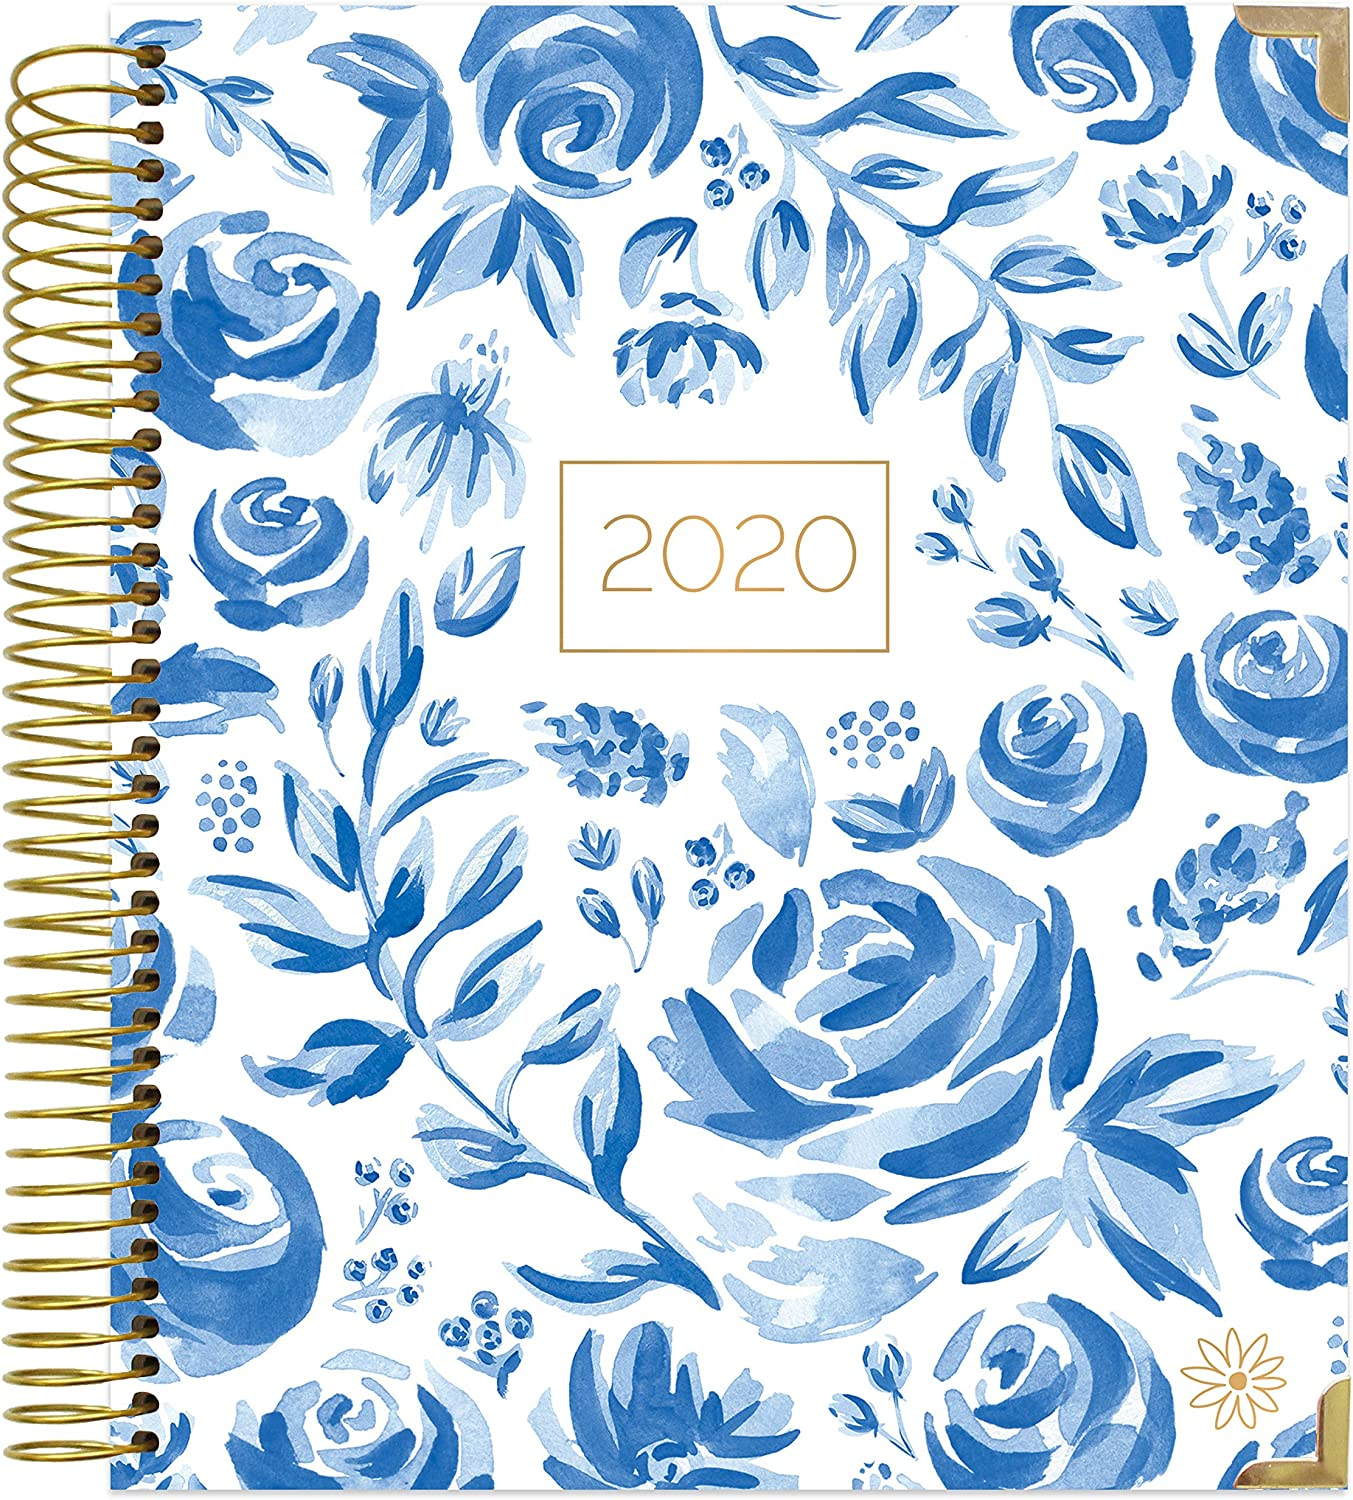 "HARDCOVER bloom daily planners 2020 Calendar Year Goal & Vision Planner (January 2020 - December 2020) - Monthly/Weekly Column View Agenda Organizer - 7.5"" x 9"" - Blue & White Floral"